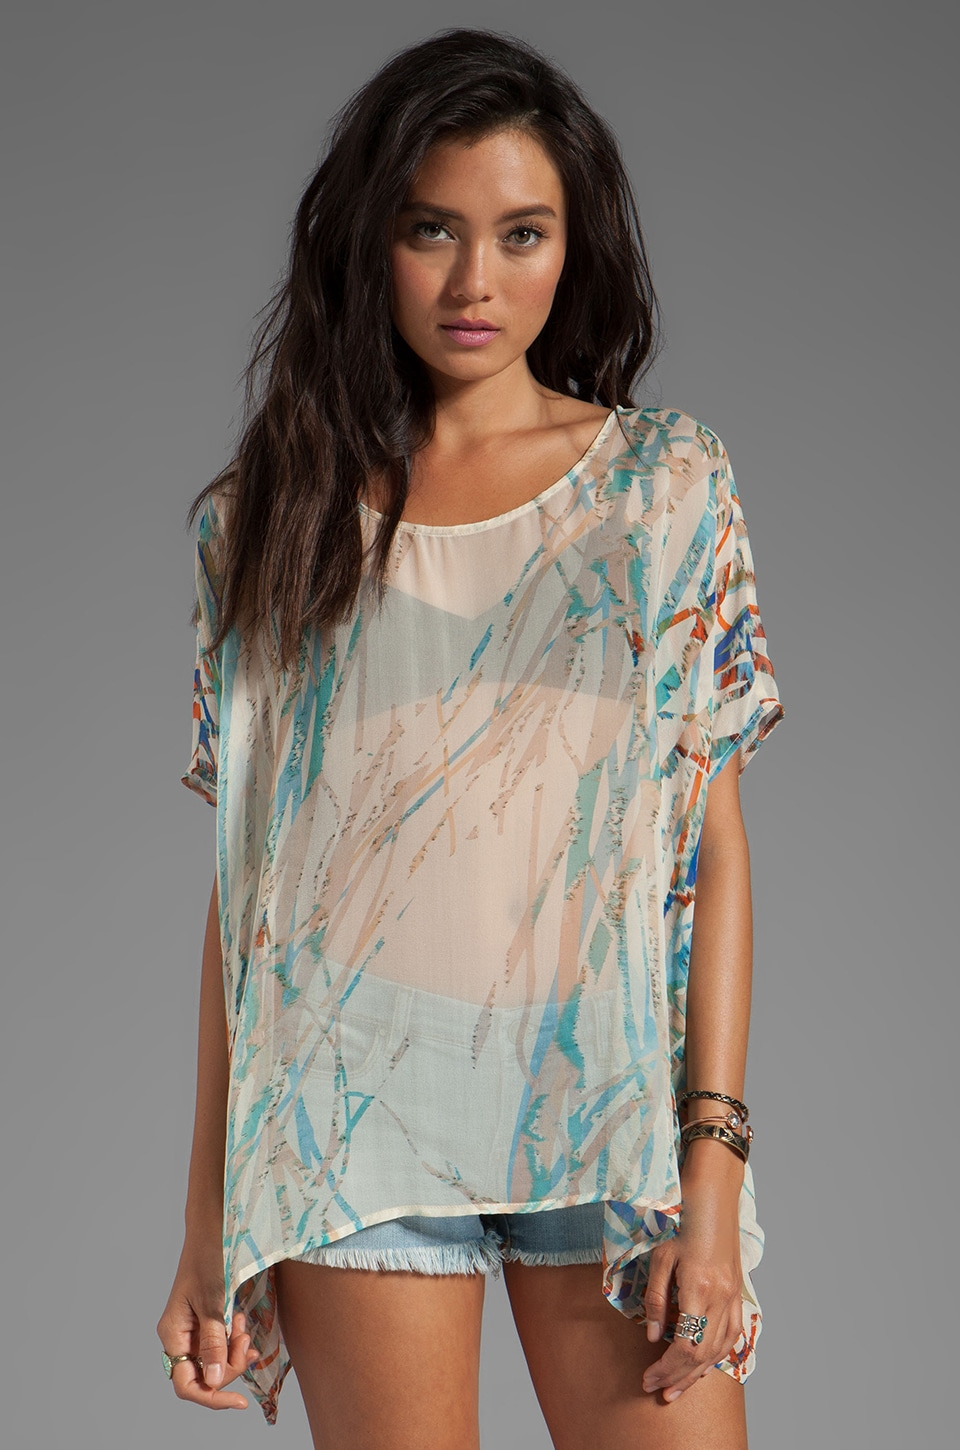 Gypsy 05 Cannes Seismograph Square GGT Top in Moonbeam